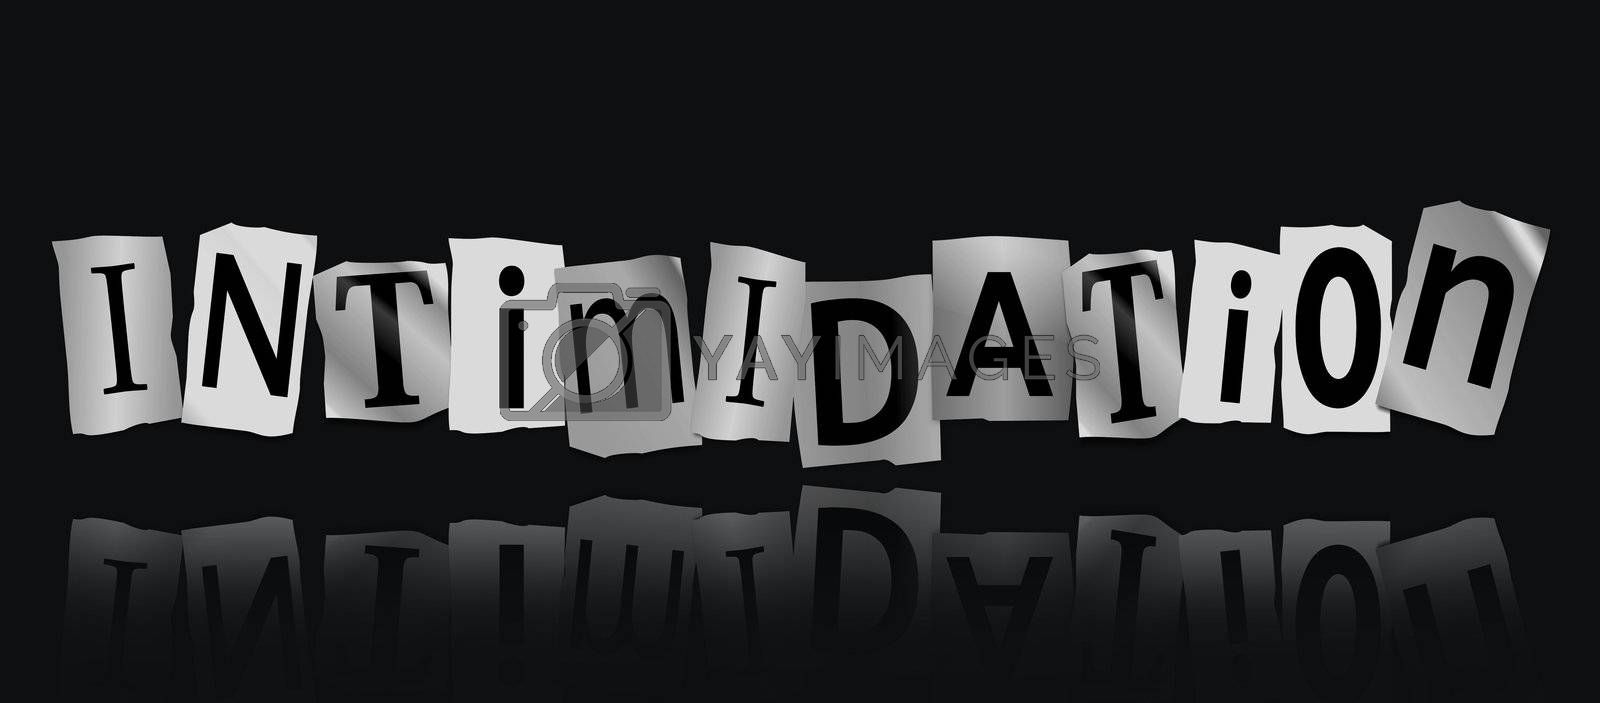 Illustration depicting cutout printed letters arranged to form the word intimidation.